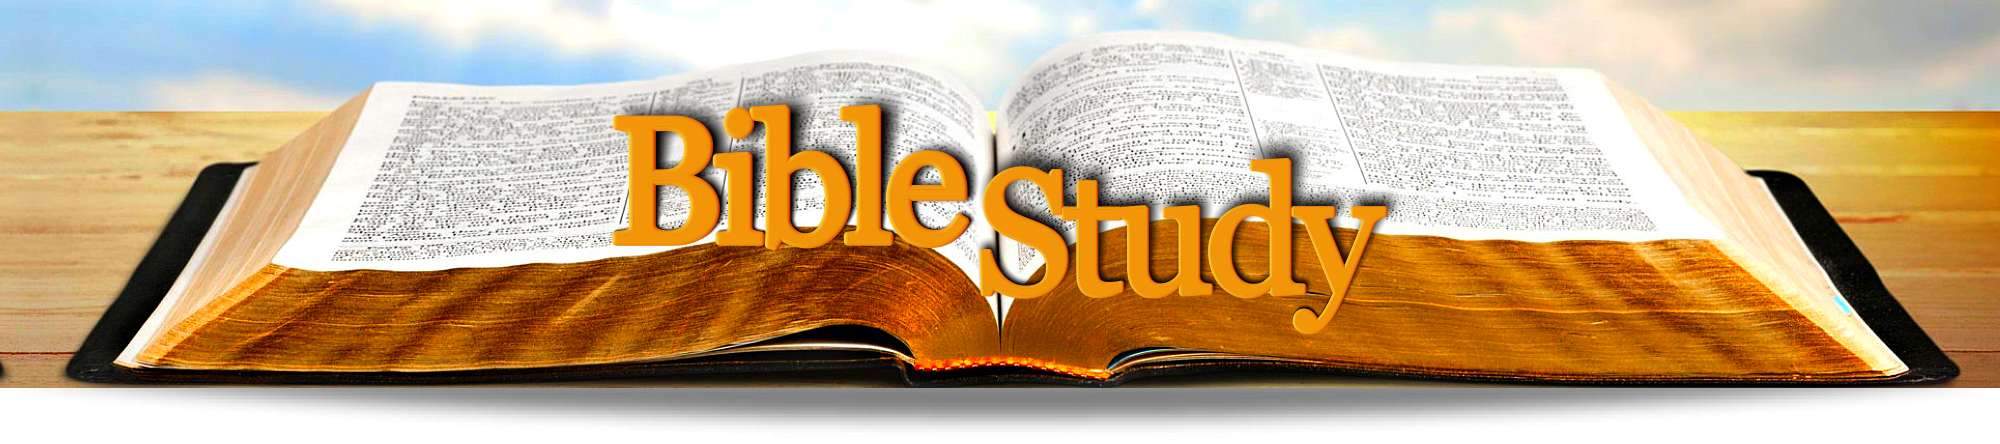 Bible Study - Free vector graphic on Pixabay